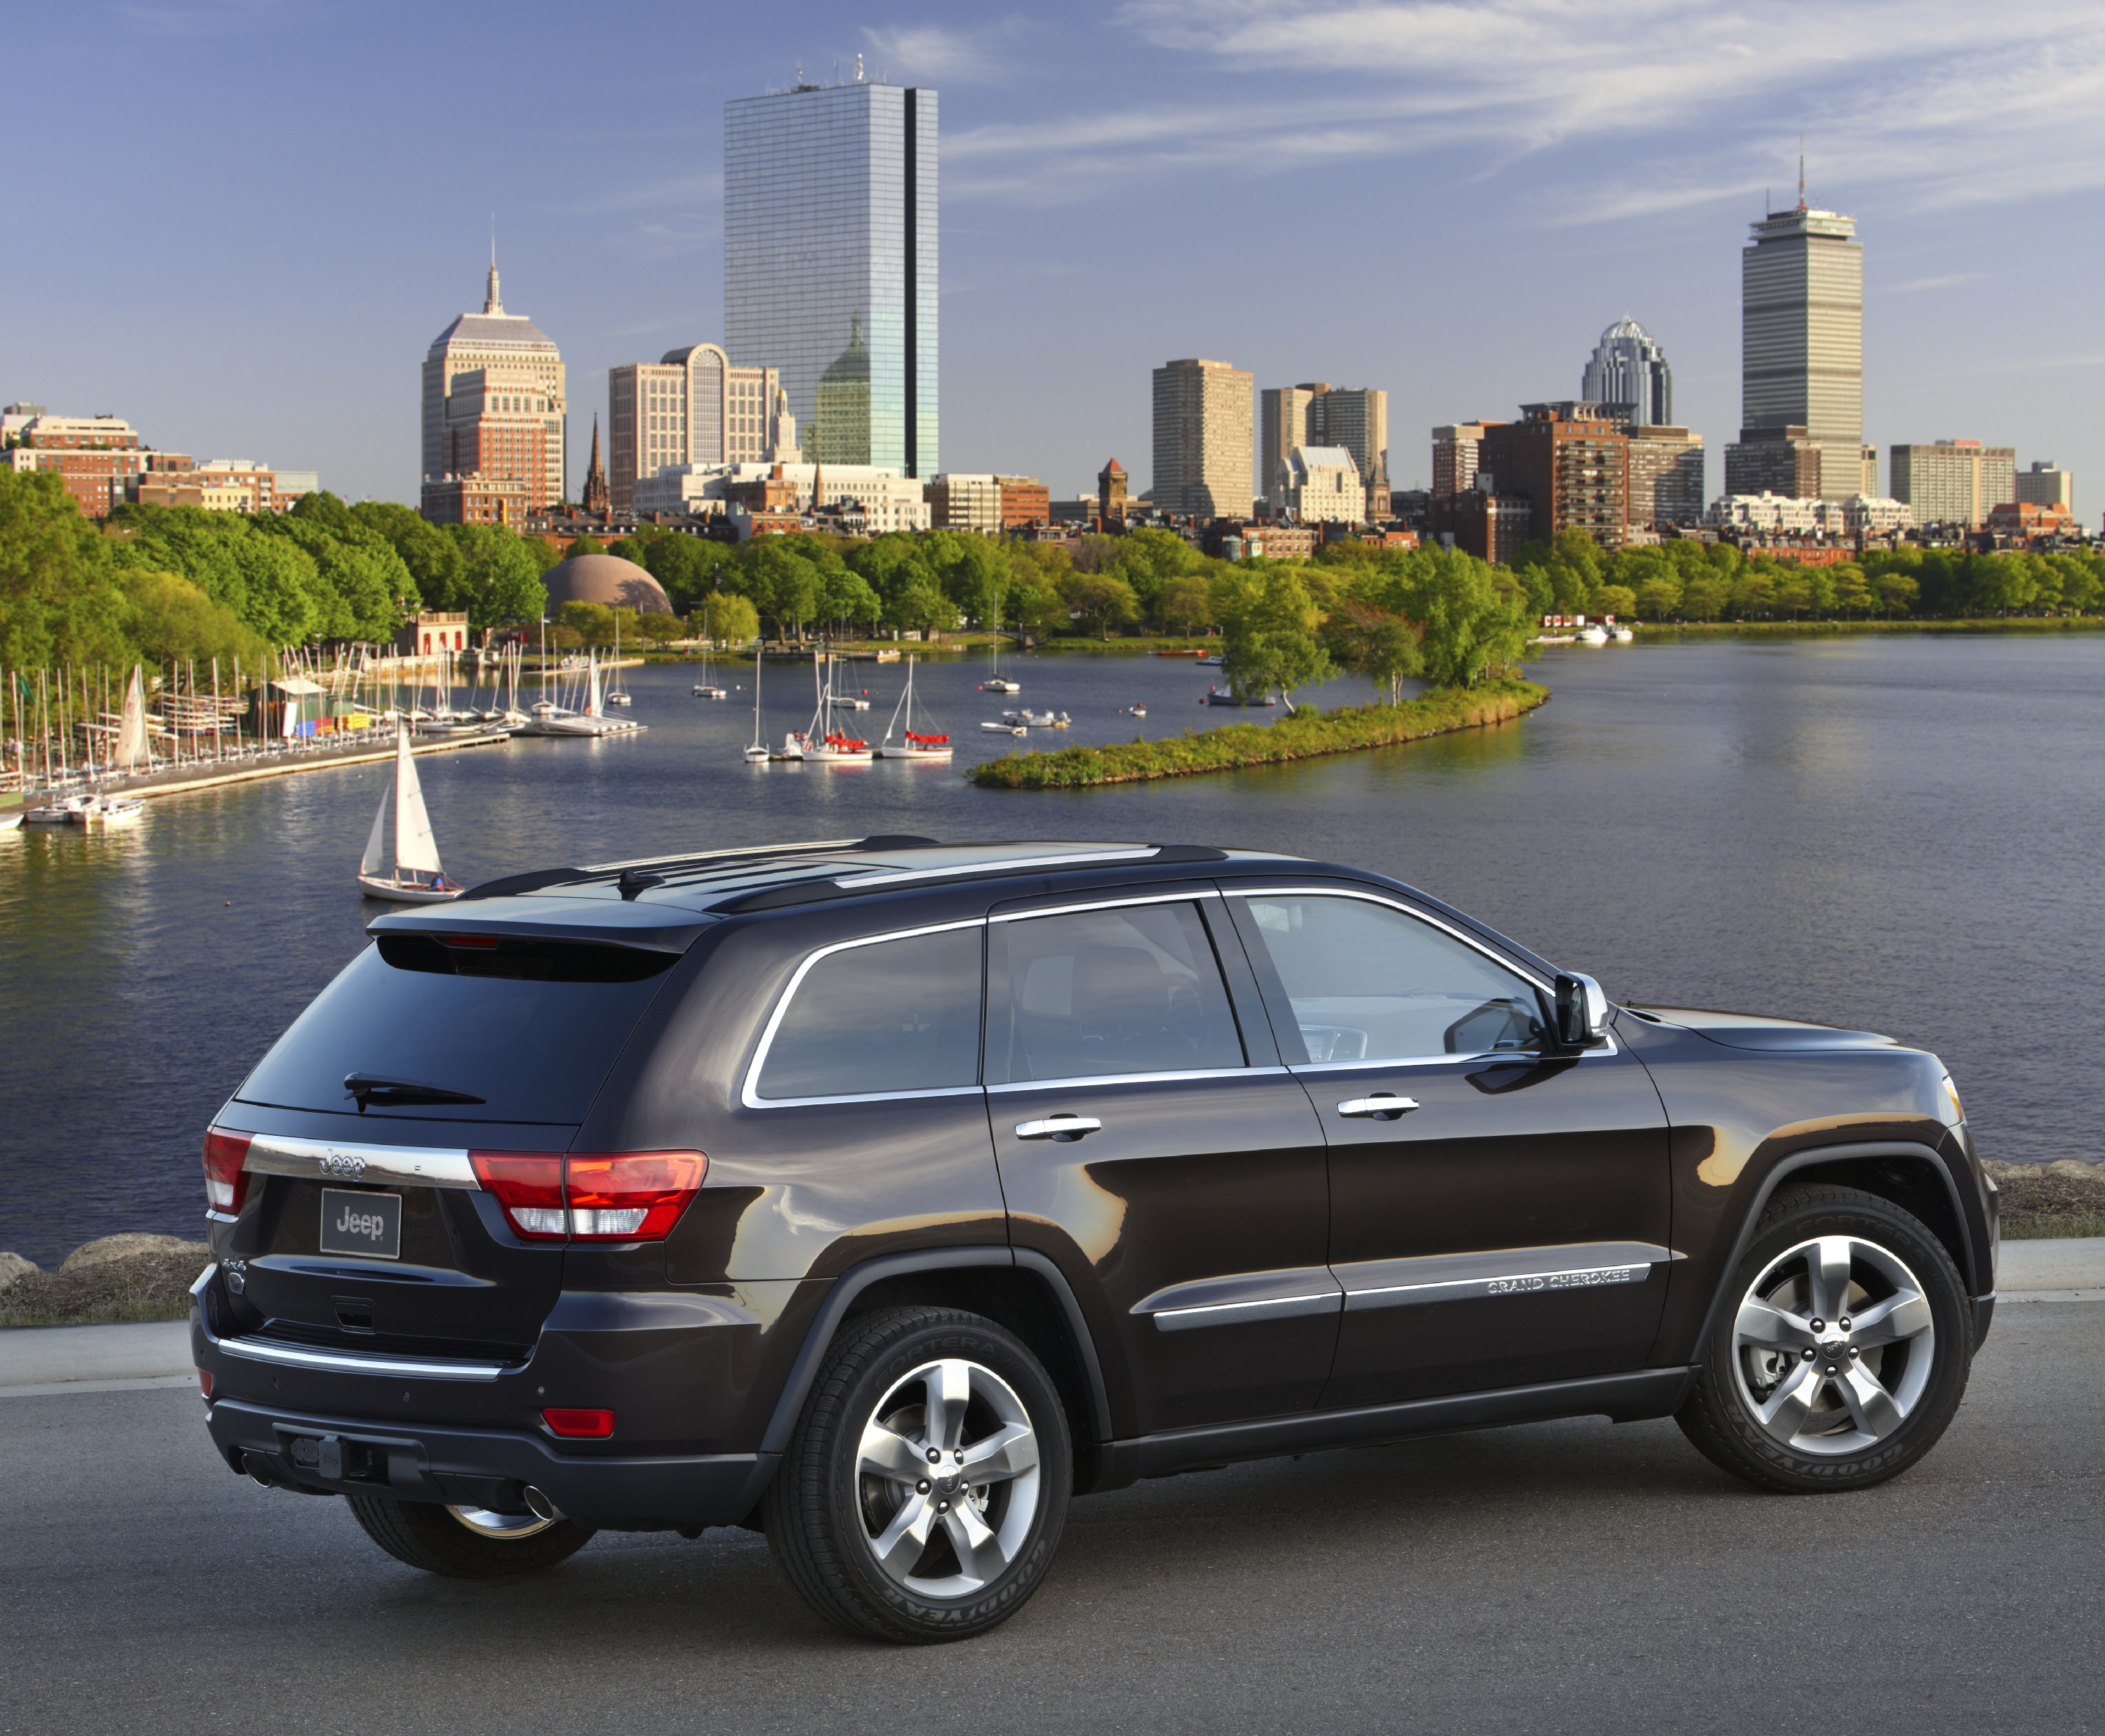 best category summit and vs car of grand img ford explorer exam consumerandcarexam jeep consumer cherokee part suv the